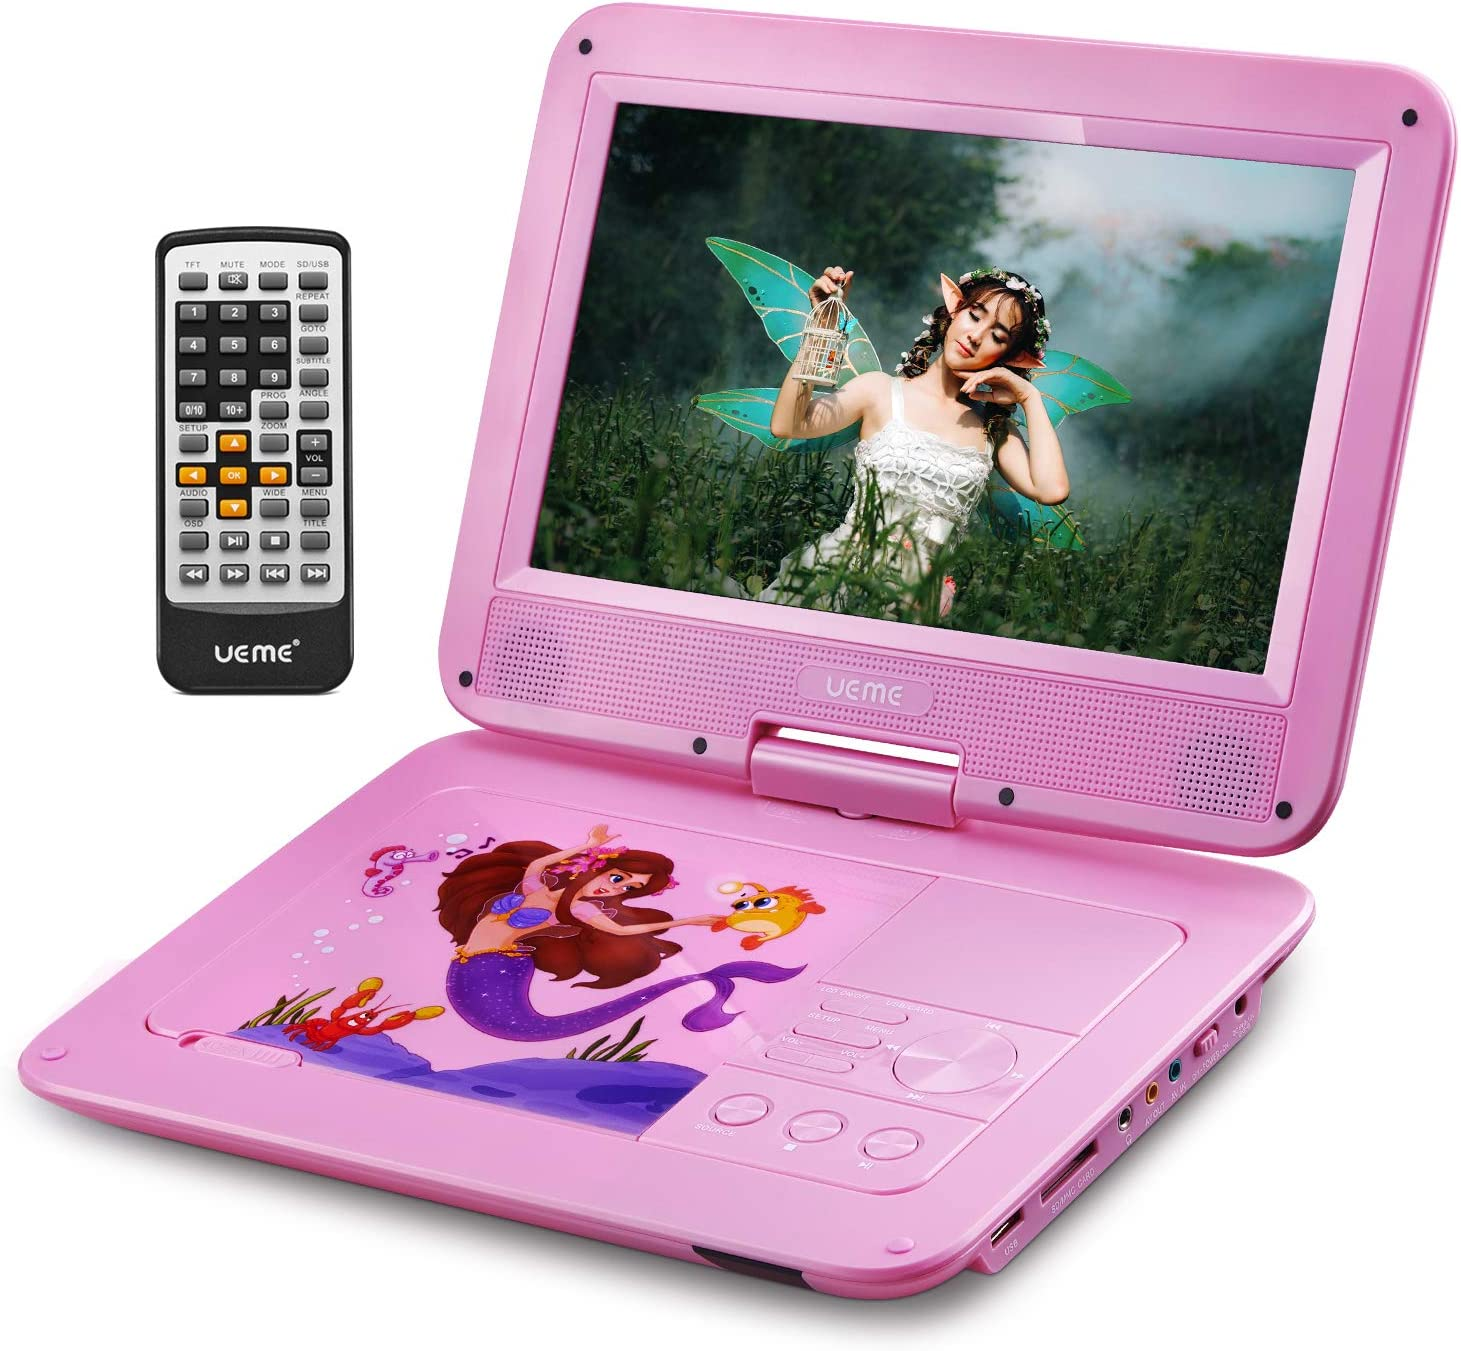 UEME Portable DVD Player with 10.1 Inches HD LCD Screen, Car Headrest Mount Holder, Remote Control